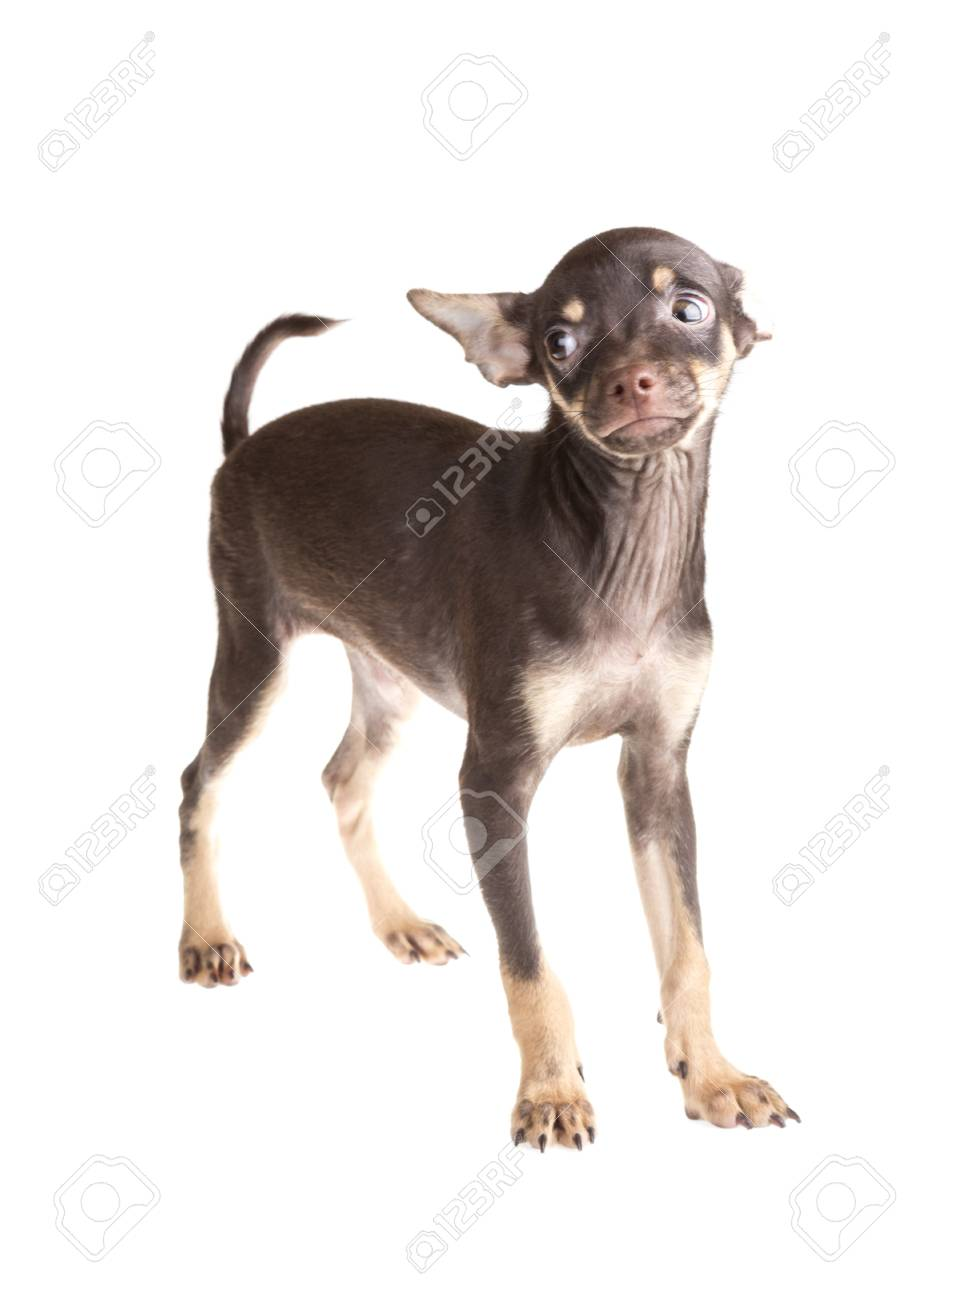 Russian toy terrier, isolated on a white background Stock Photo - 17366506